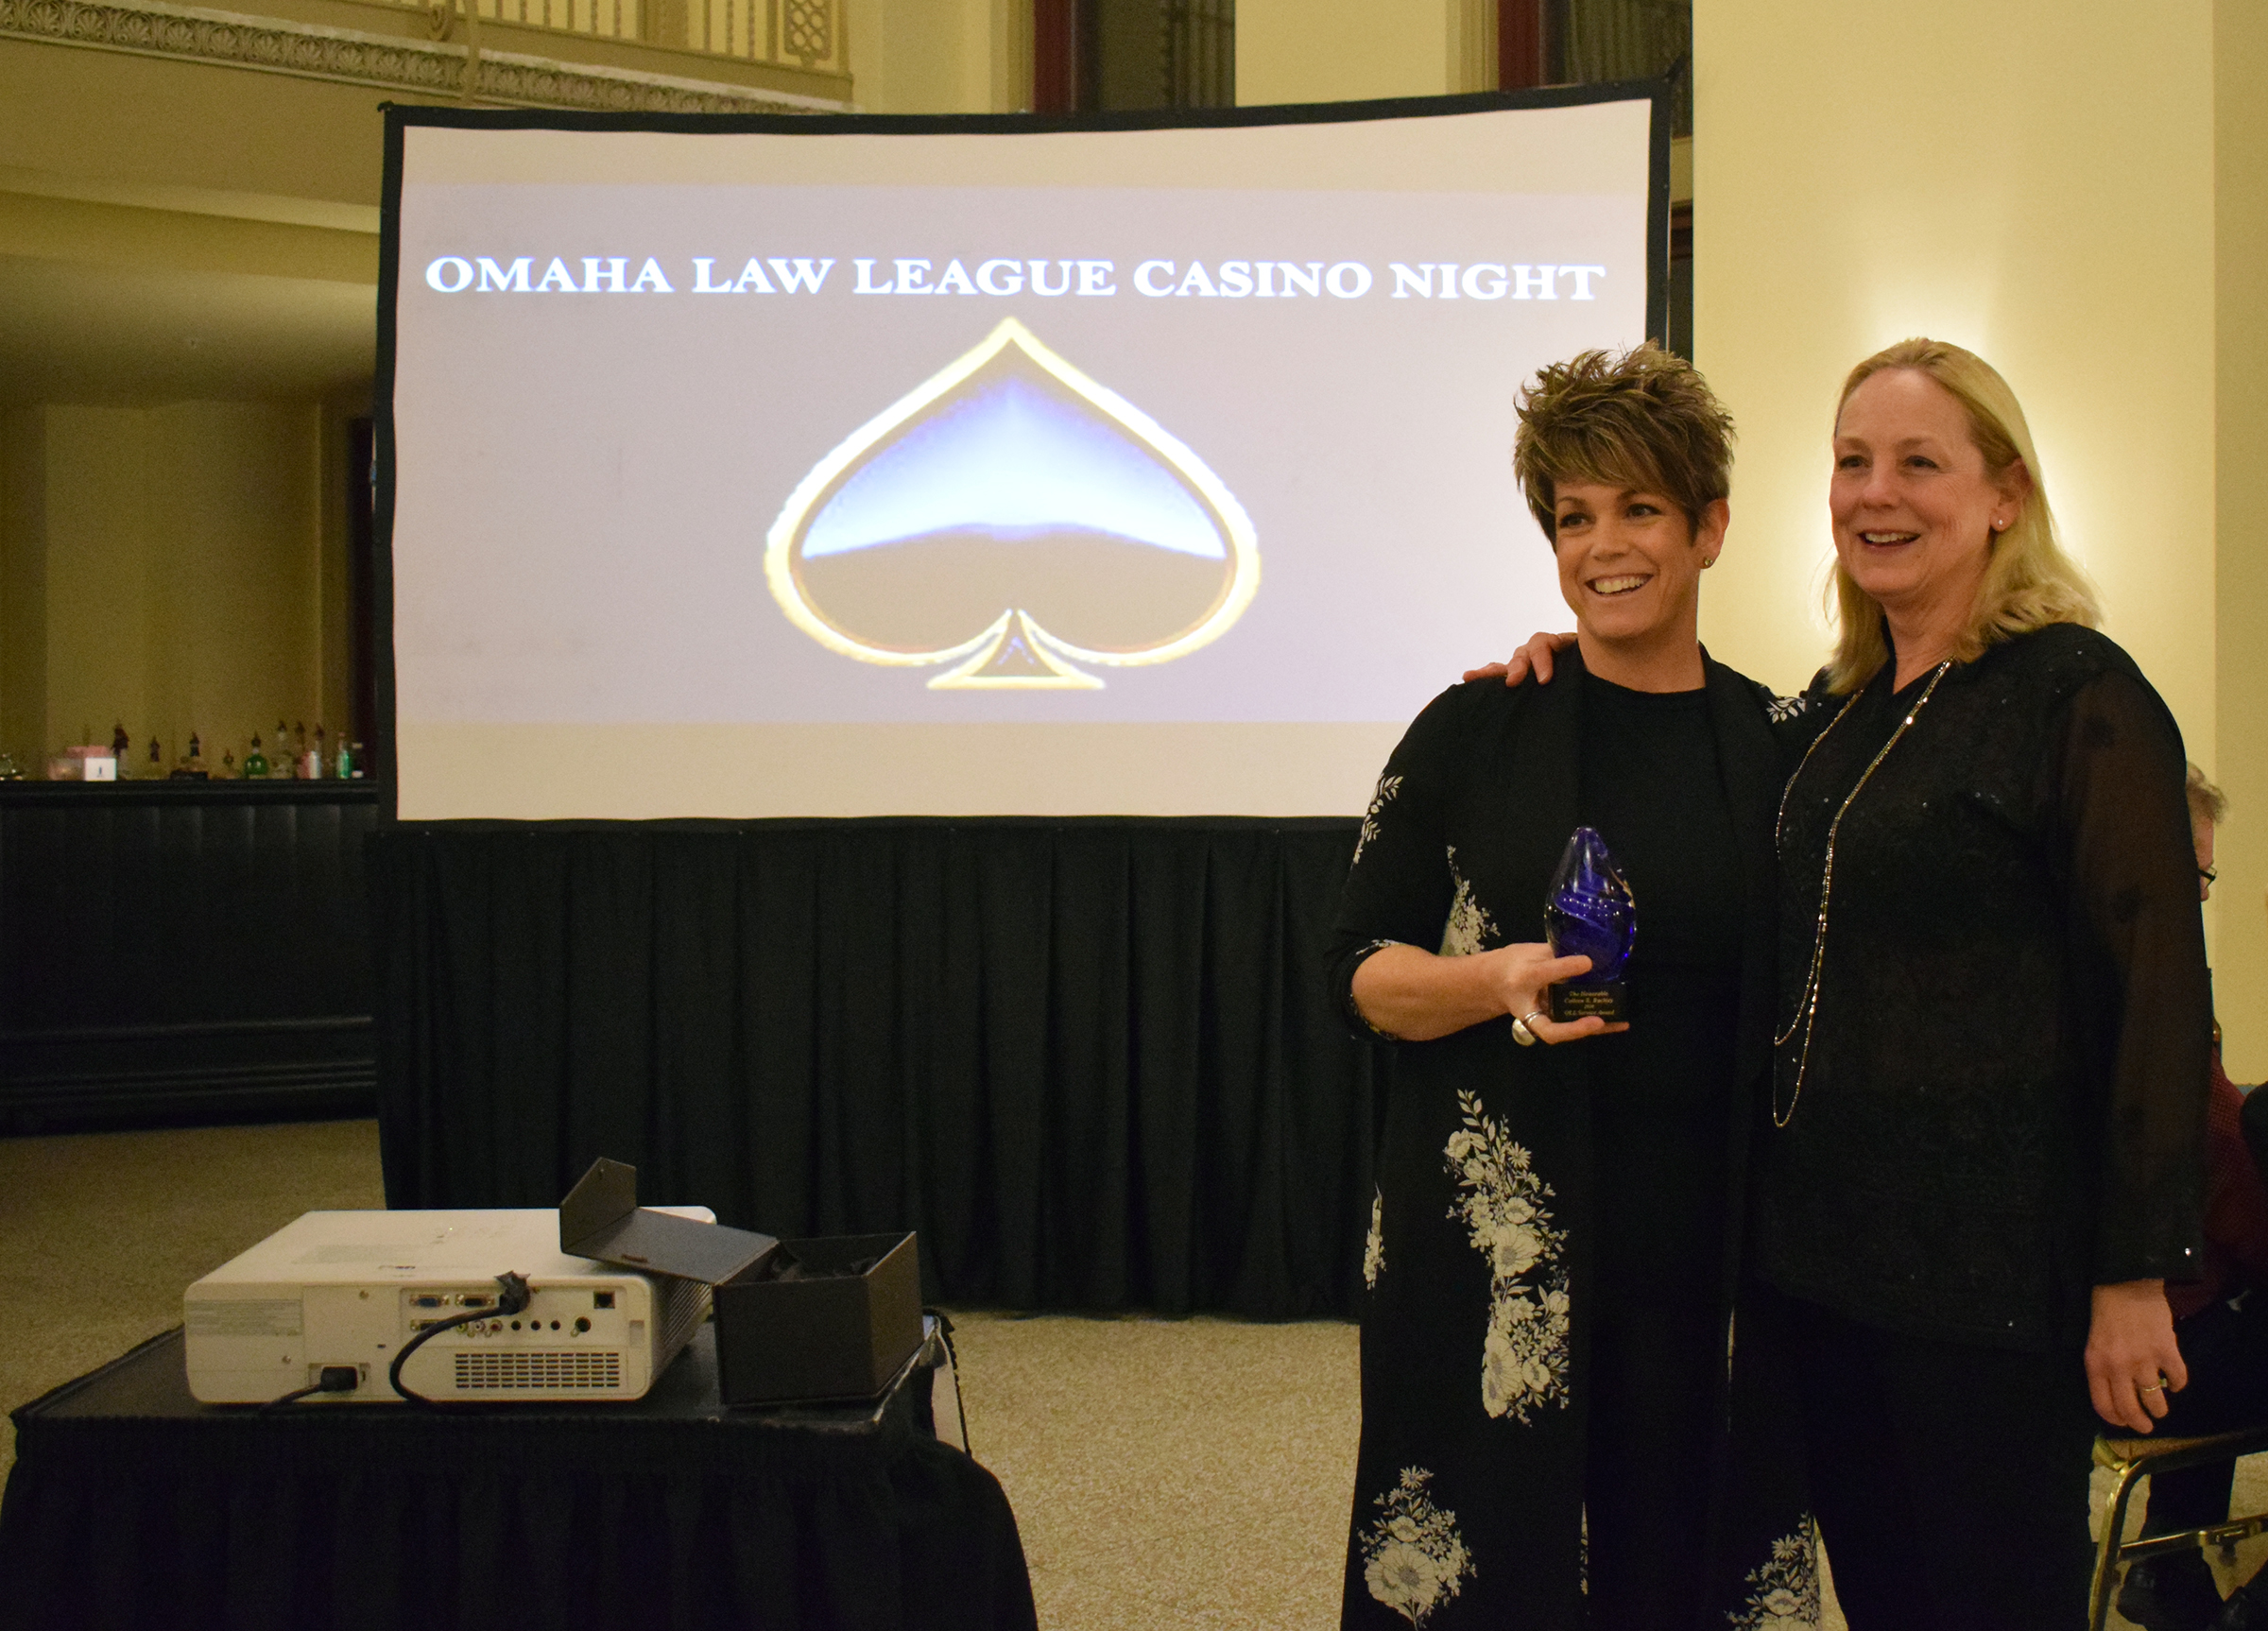 Kathy Knickrehm, right, receives a service award for her dedication to the Omaha Law League from Douglas County Court Judge Marcela Keim at the OLL Casino Night at the Livestock Exchange Building on March 6, 2020. (Photo by Elizabeth A. Elliott)